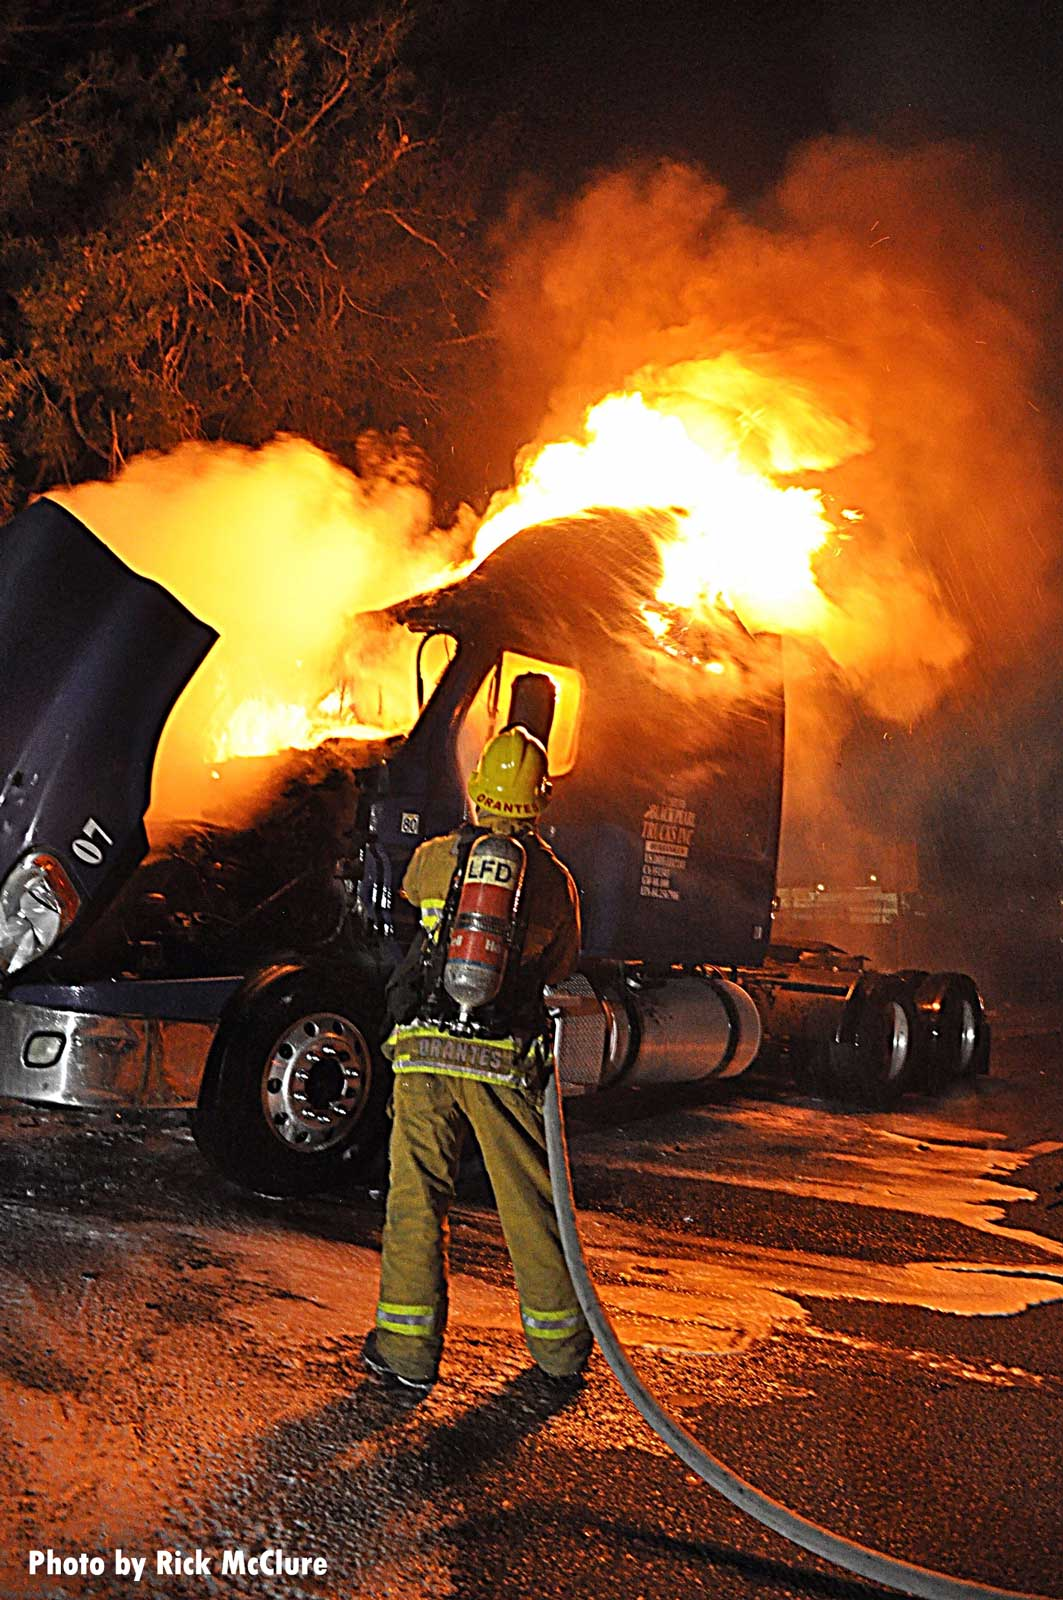 A firefighter works a tractor trailer fire in Los Angeles